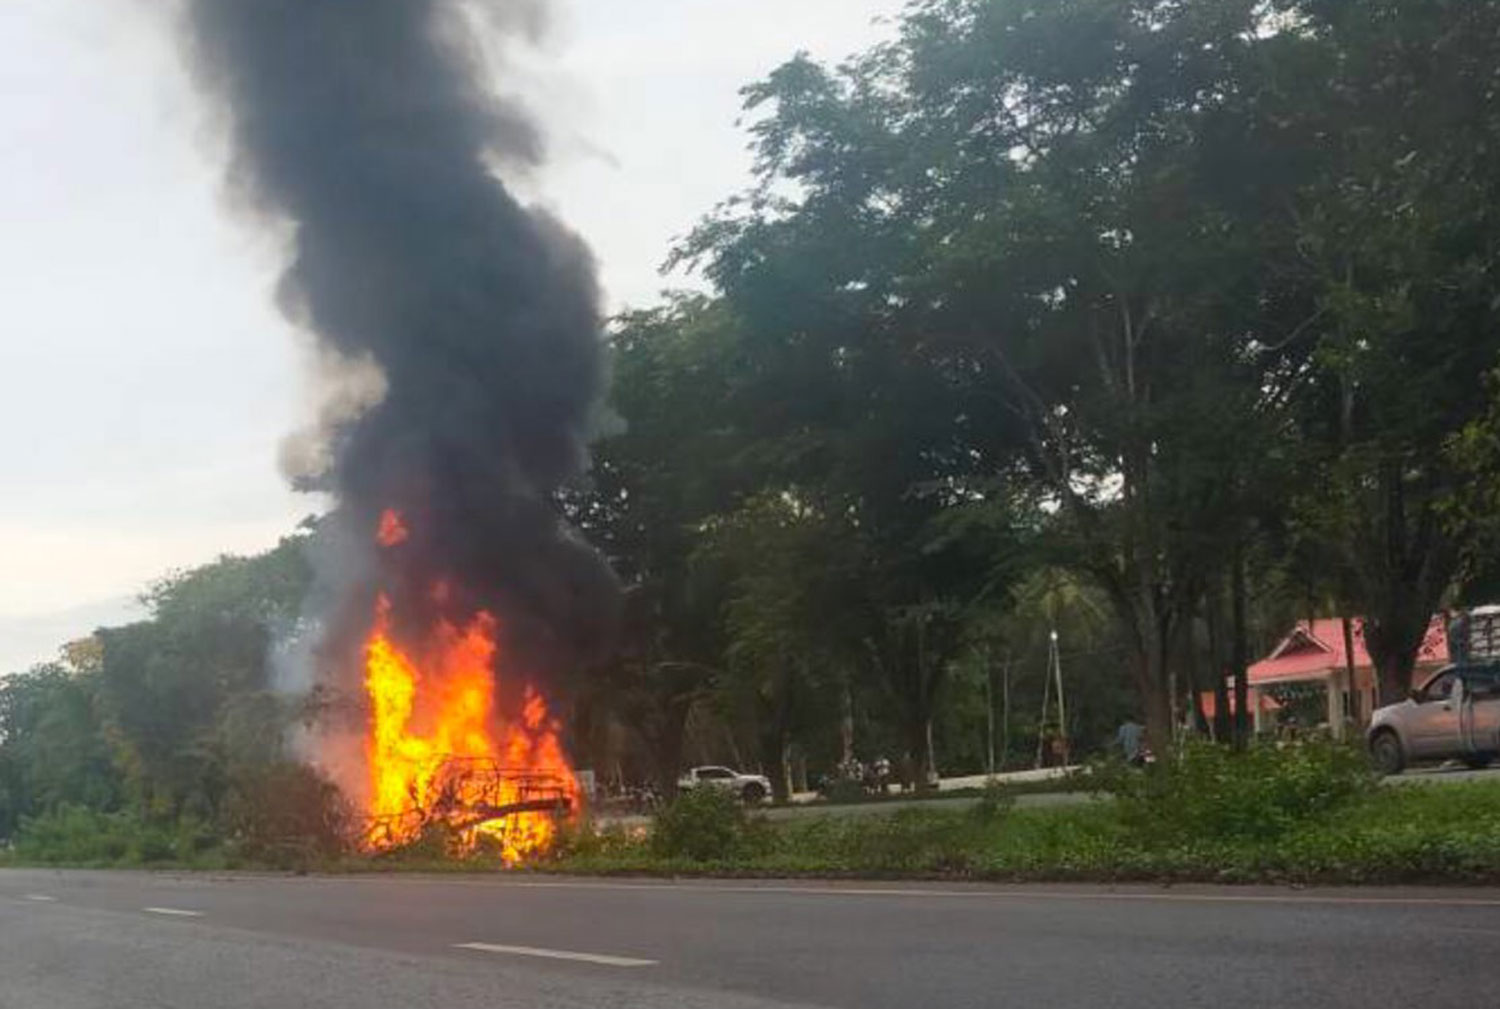 Flames rise from two pickup trucks on a road in Sai Buri district of Pattani after assailants opened fire on Saturday morning, killing three people inside the vehicles. (Photo: Abdullah Benjakat)